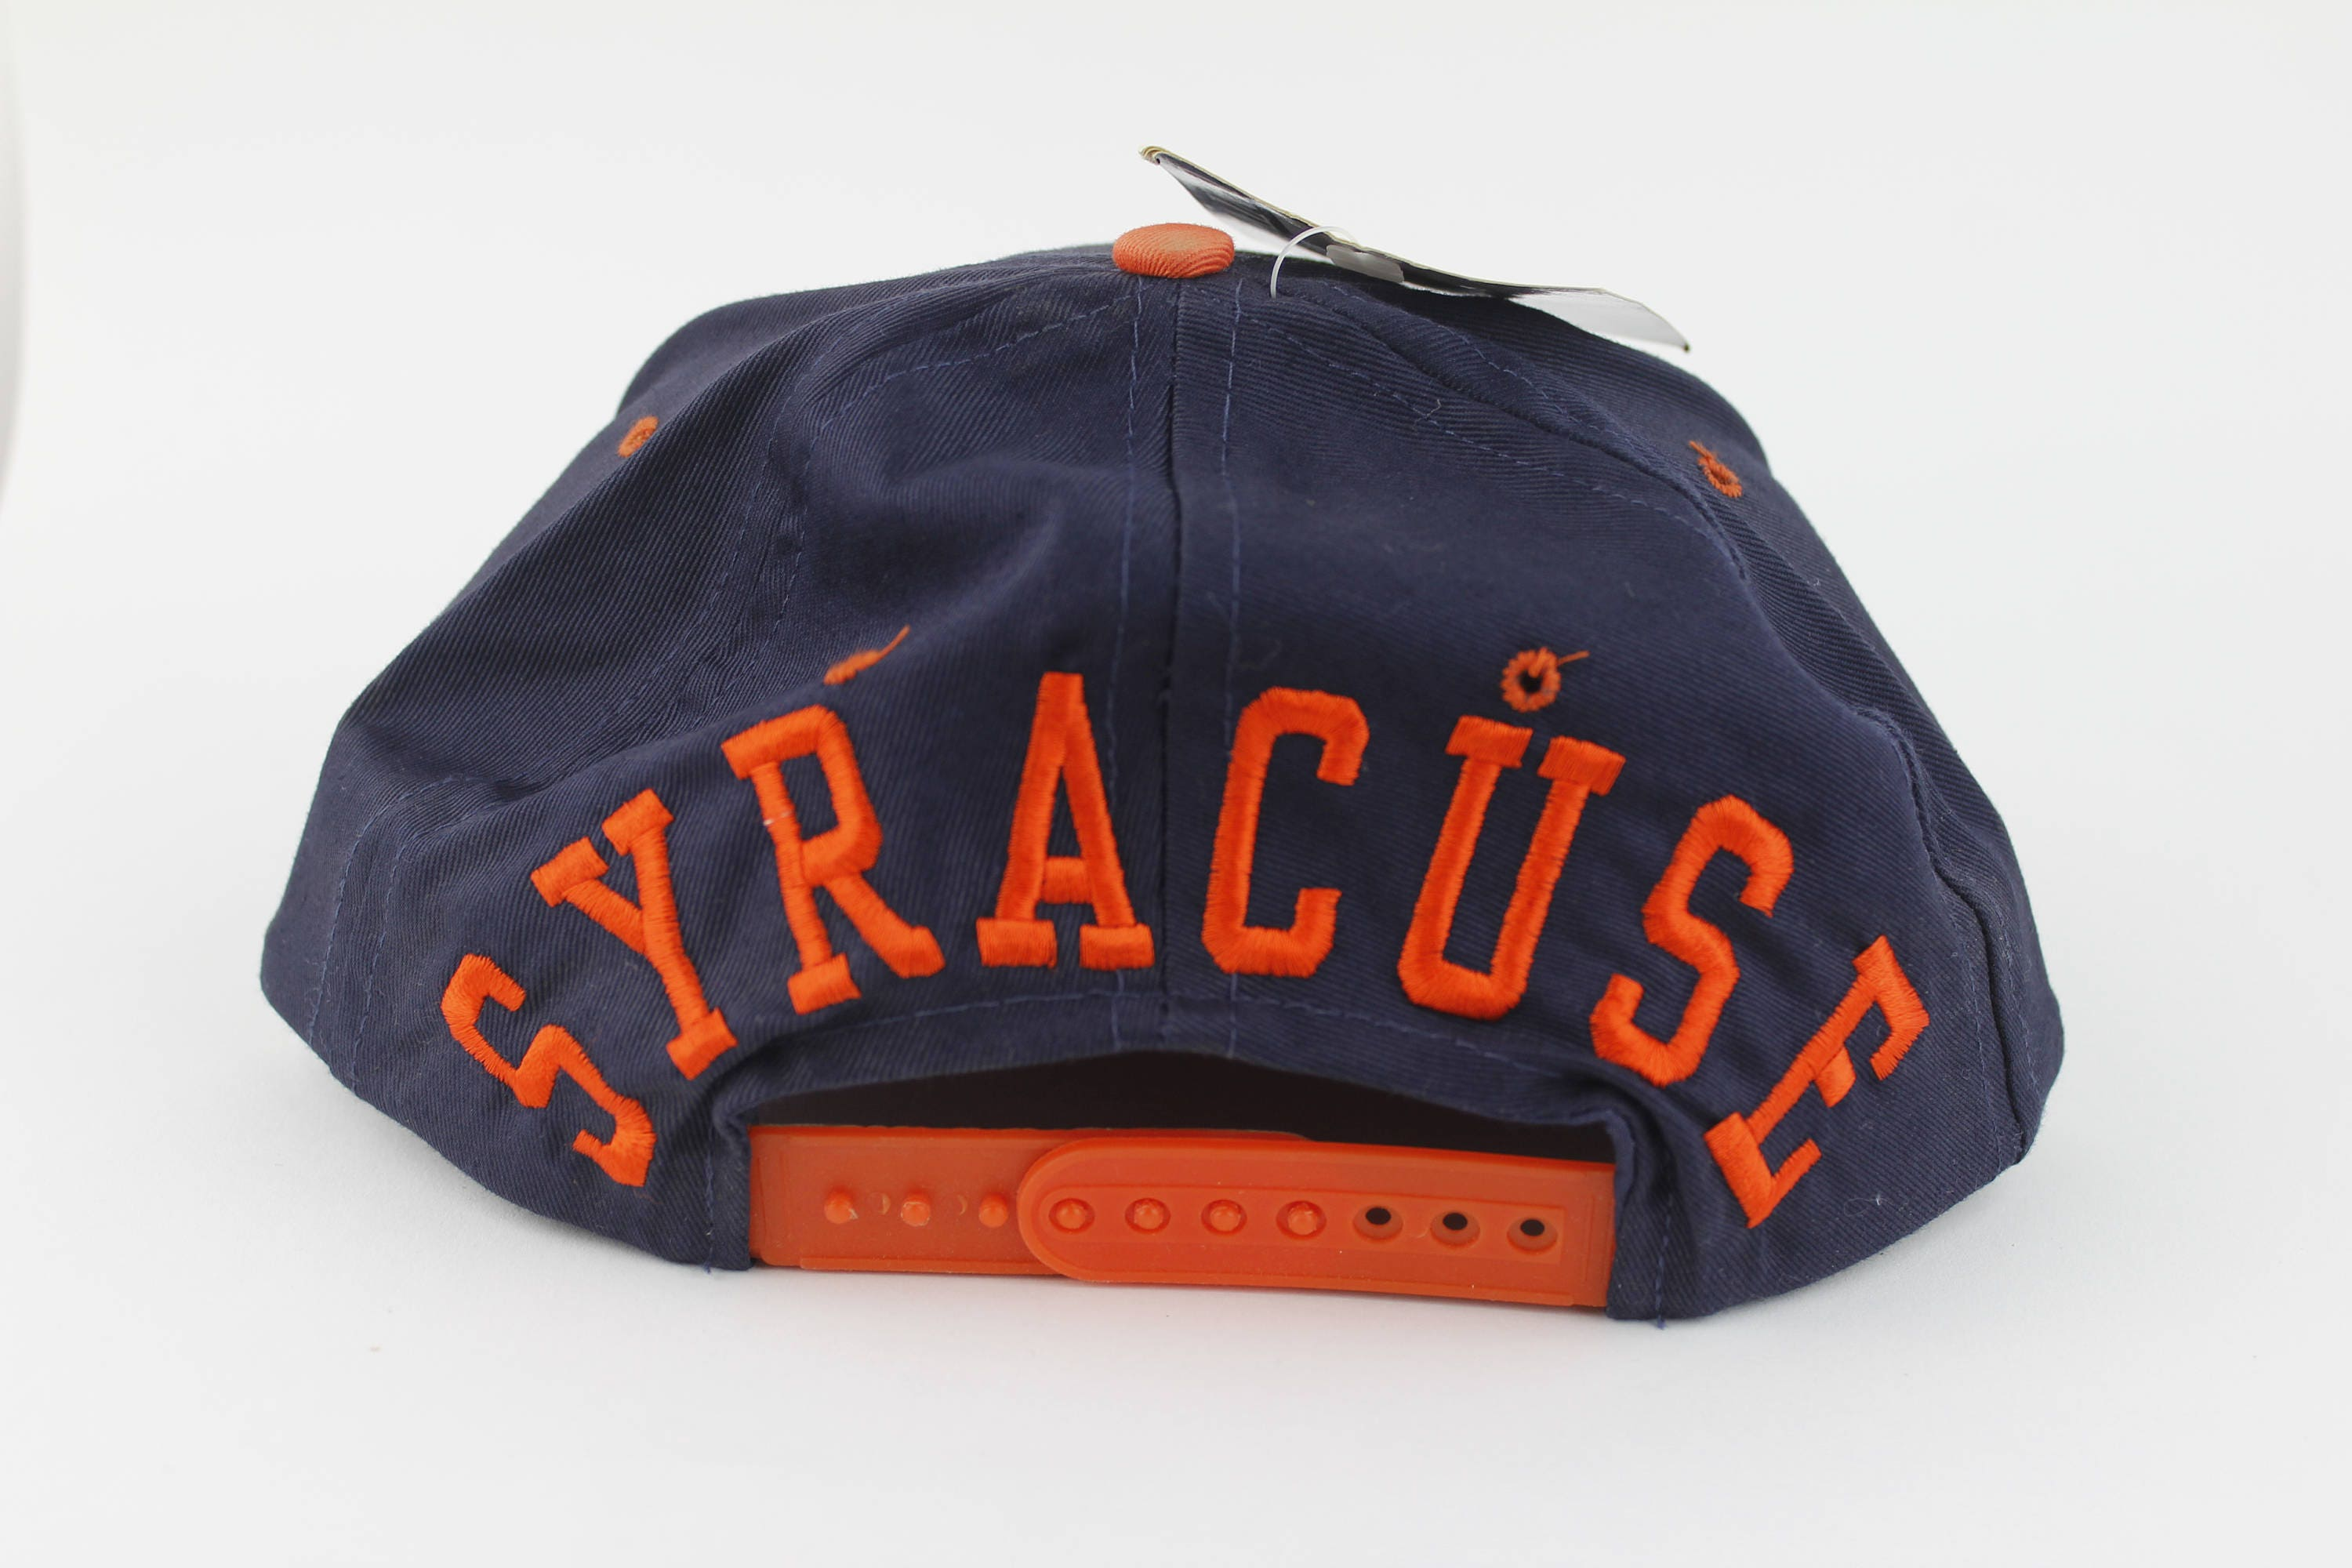 new style 61014 c4f79 ... coupon code for brand new with tags vintage 90s syracuse university  snap back hat dead stock